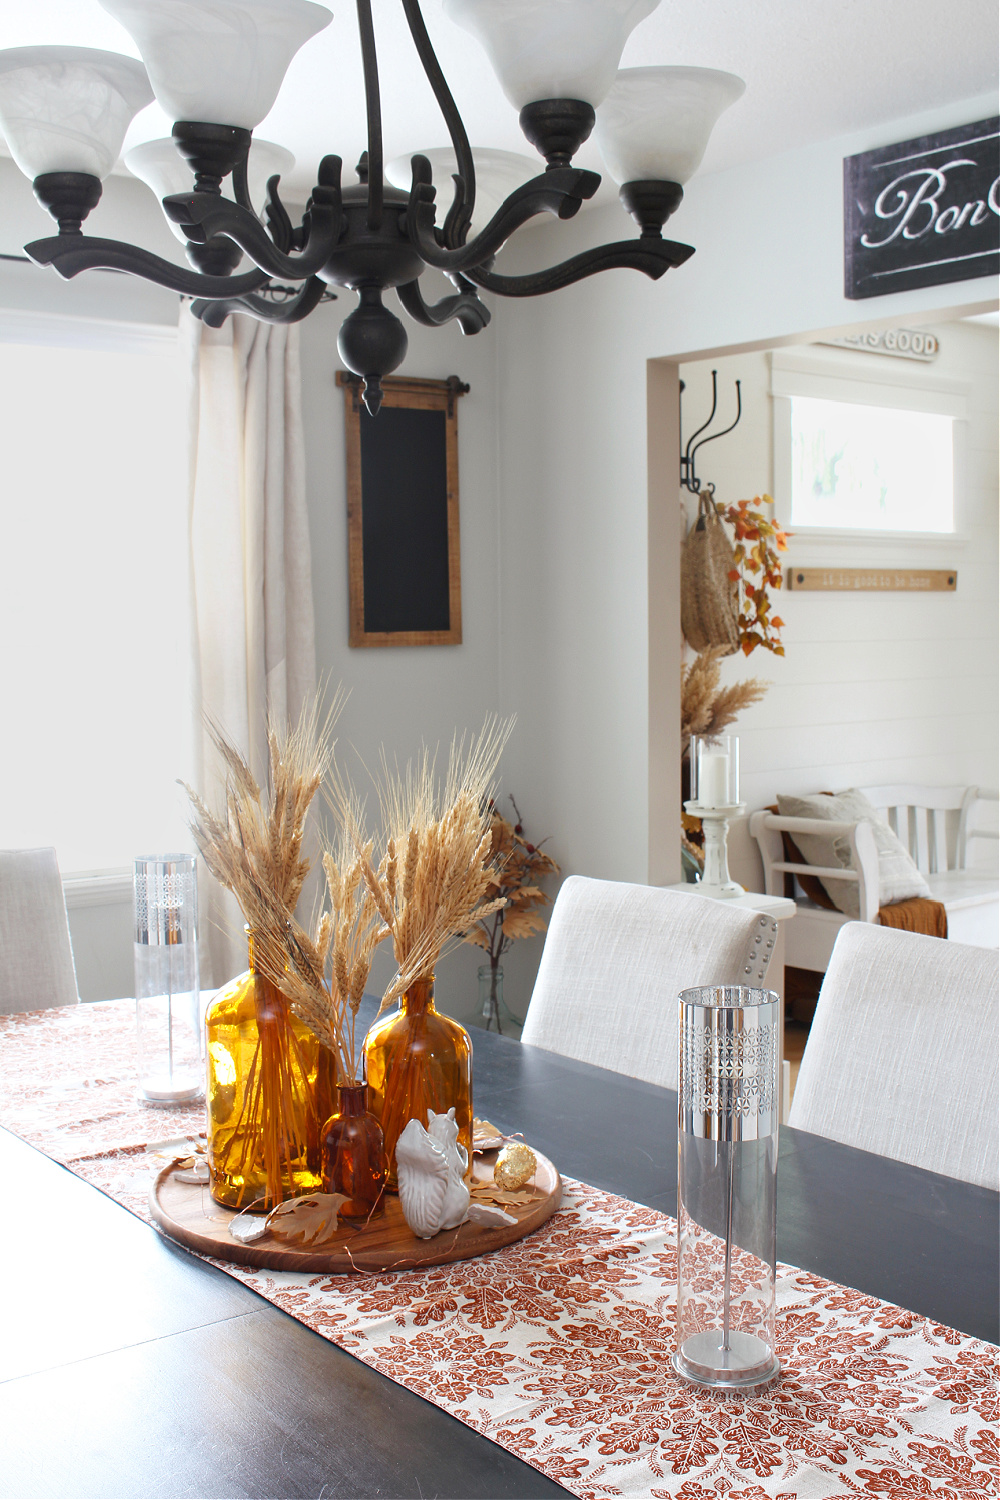 Amber glass fall centerpiece in a dining room decorated in traditional fall colors.